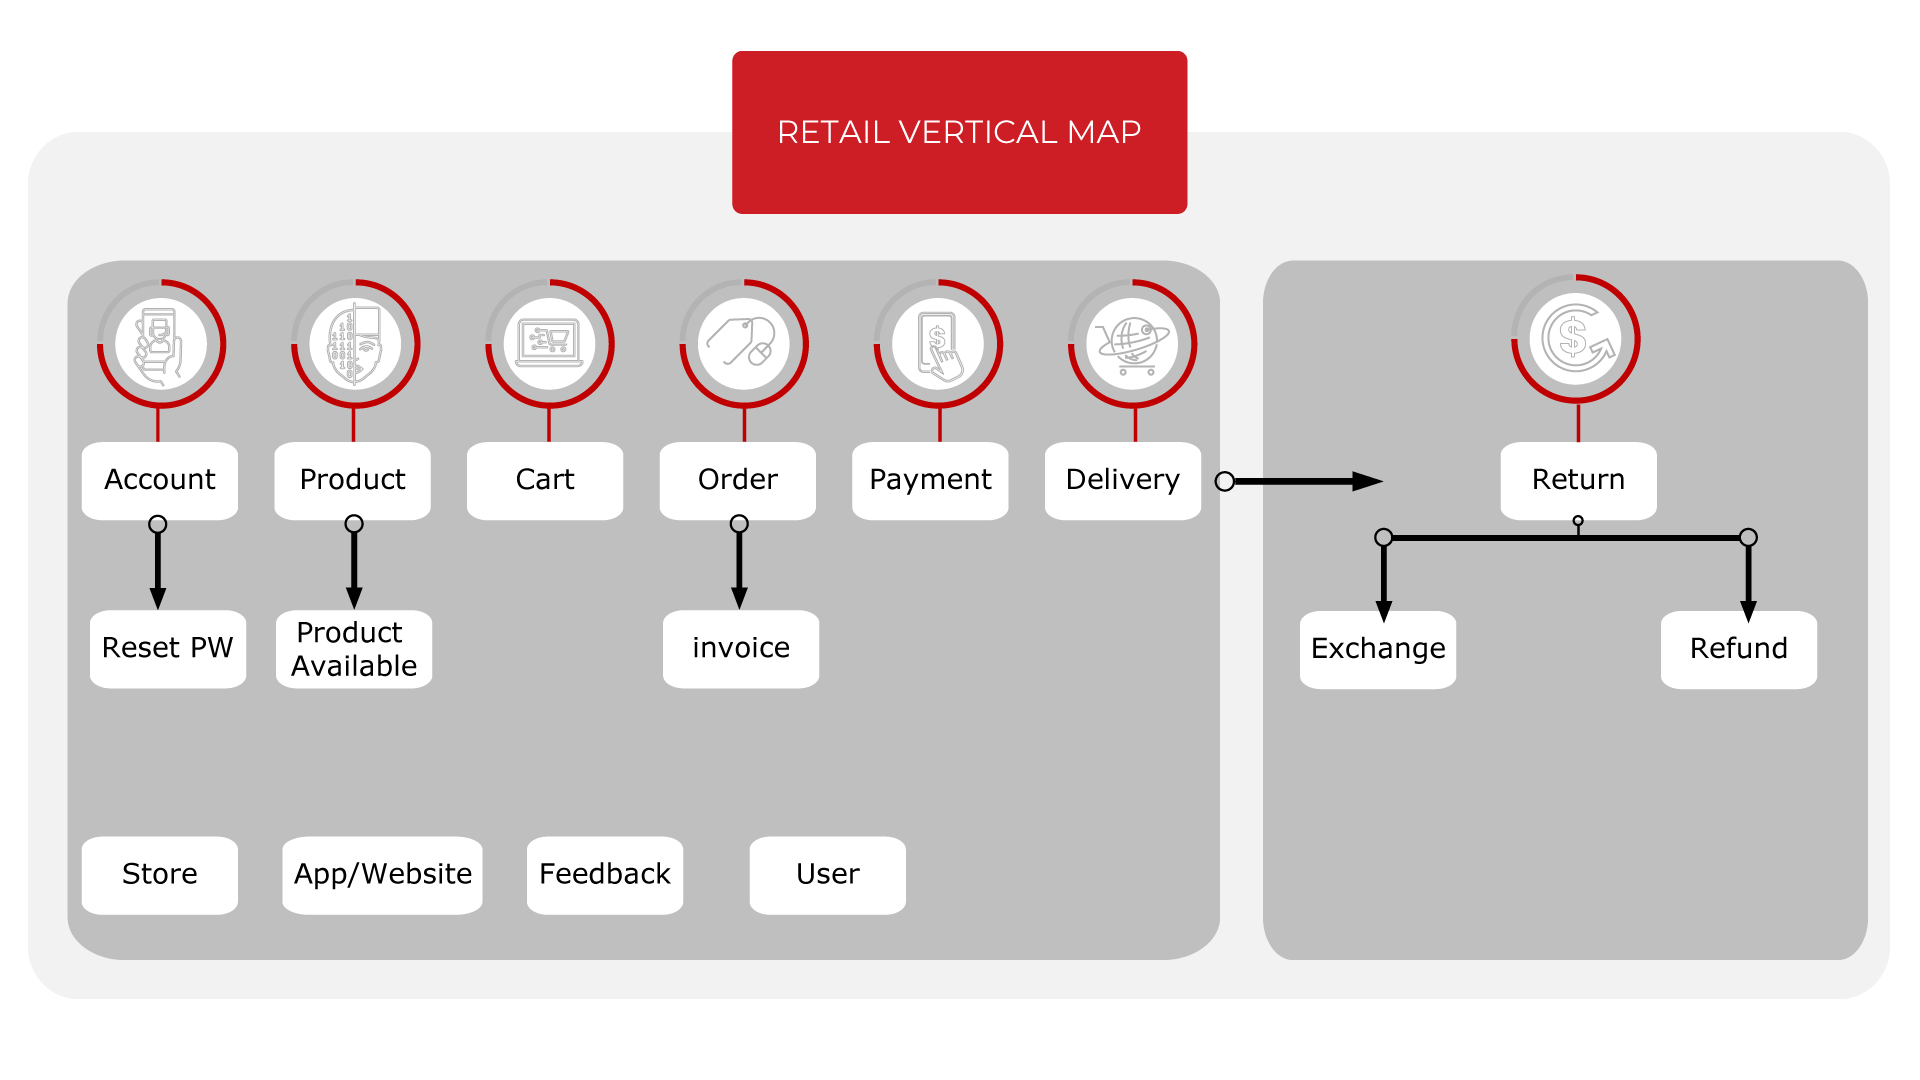 Retail-Vertical-Map-Chatbot-Bitext-Machine-learning